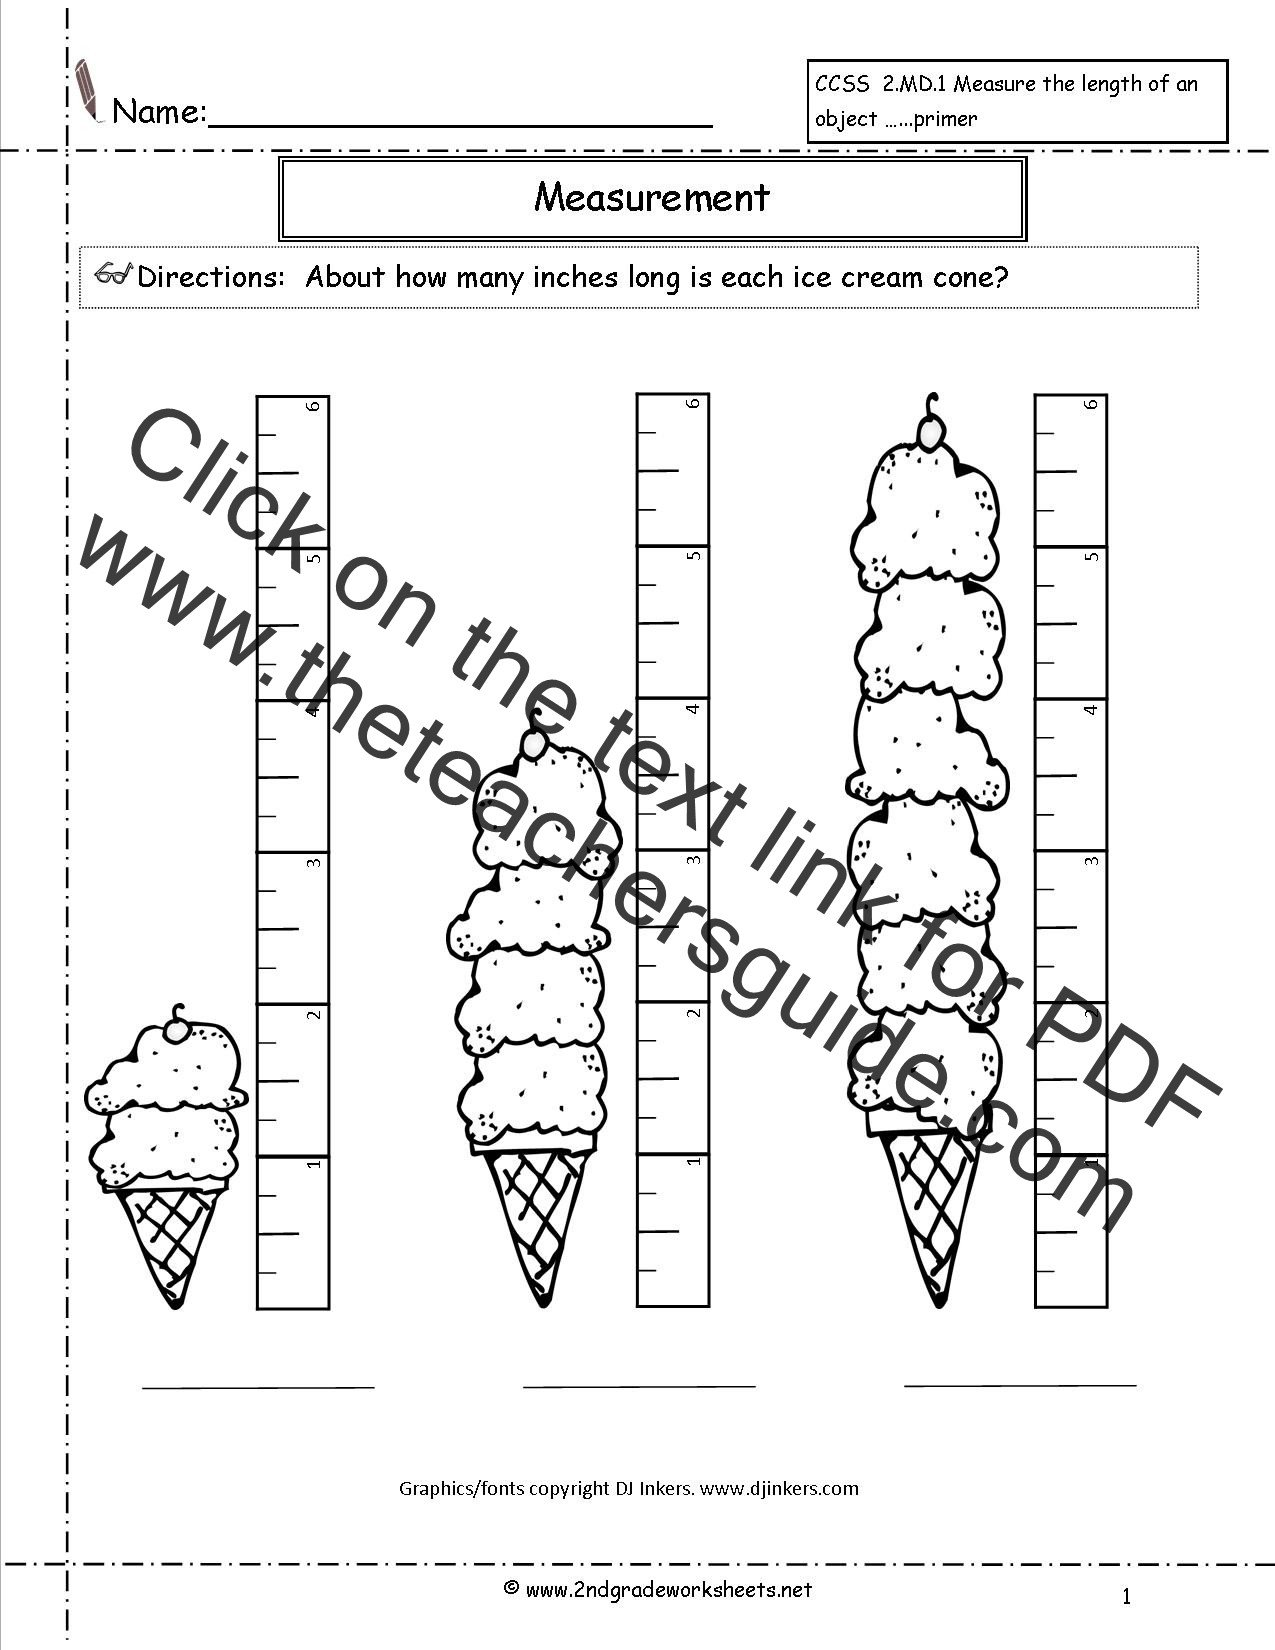 Estimating Measurement Worksheets Ccss 2 Md 1 Worksheets Measuring Worksheets